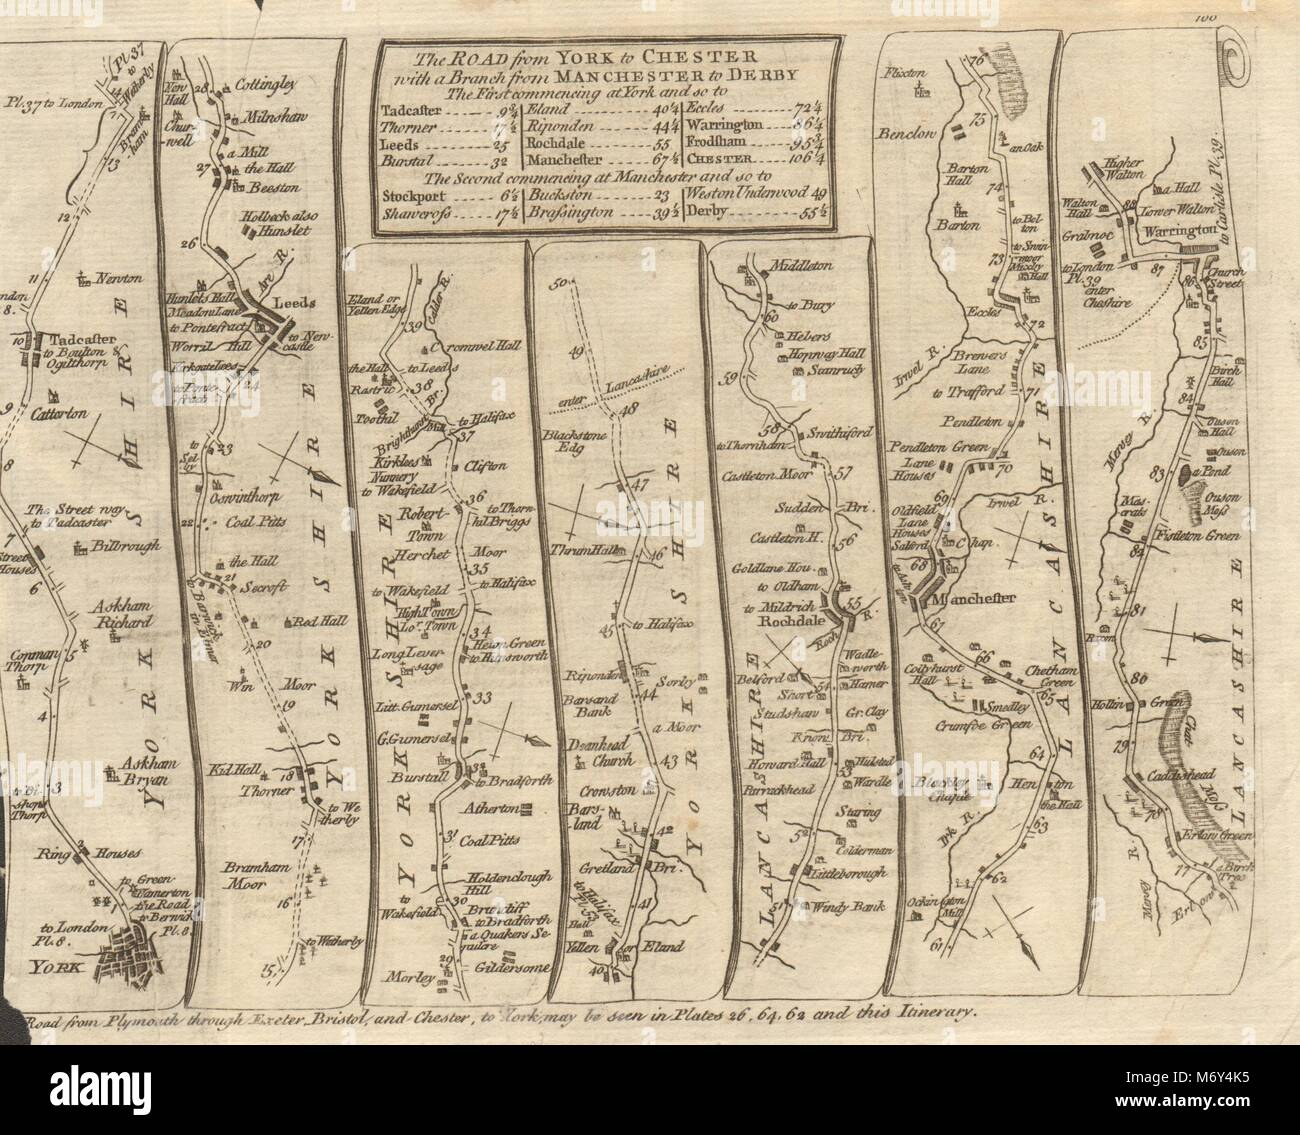 York Leeds Rochdale Bury Manchester Salford Warrington. KITCHIN road map 1767 - Stock Image